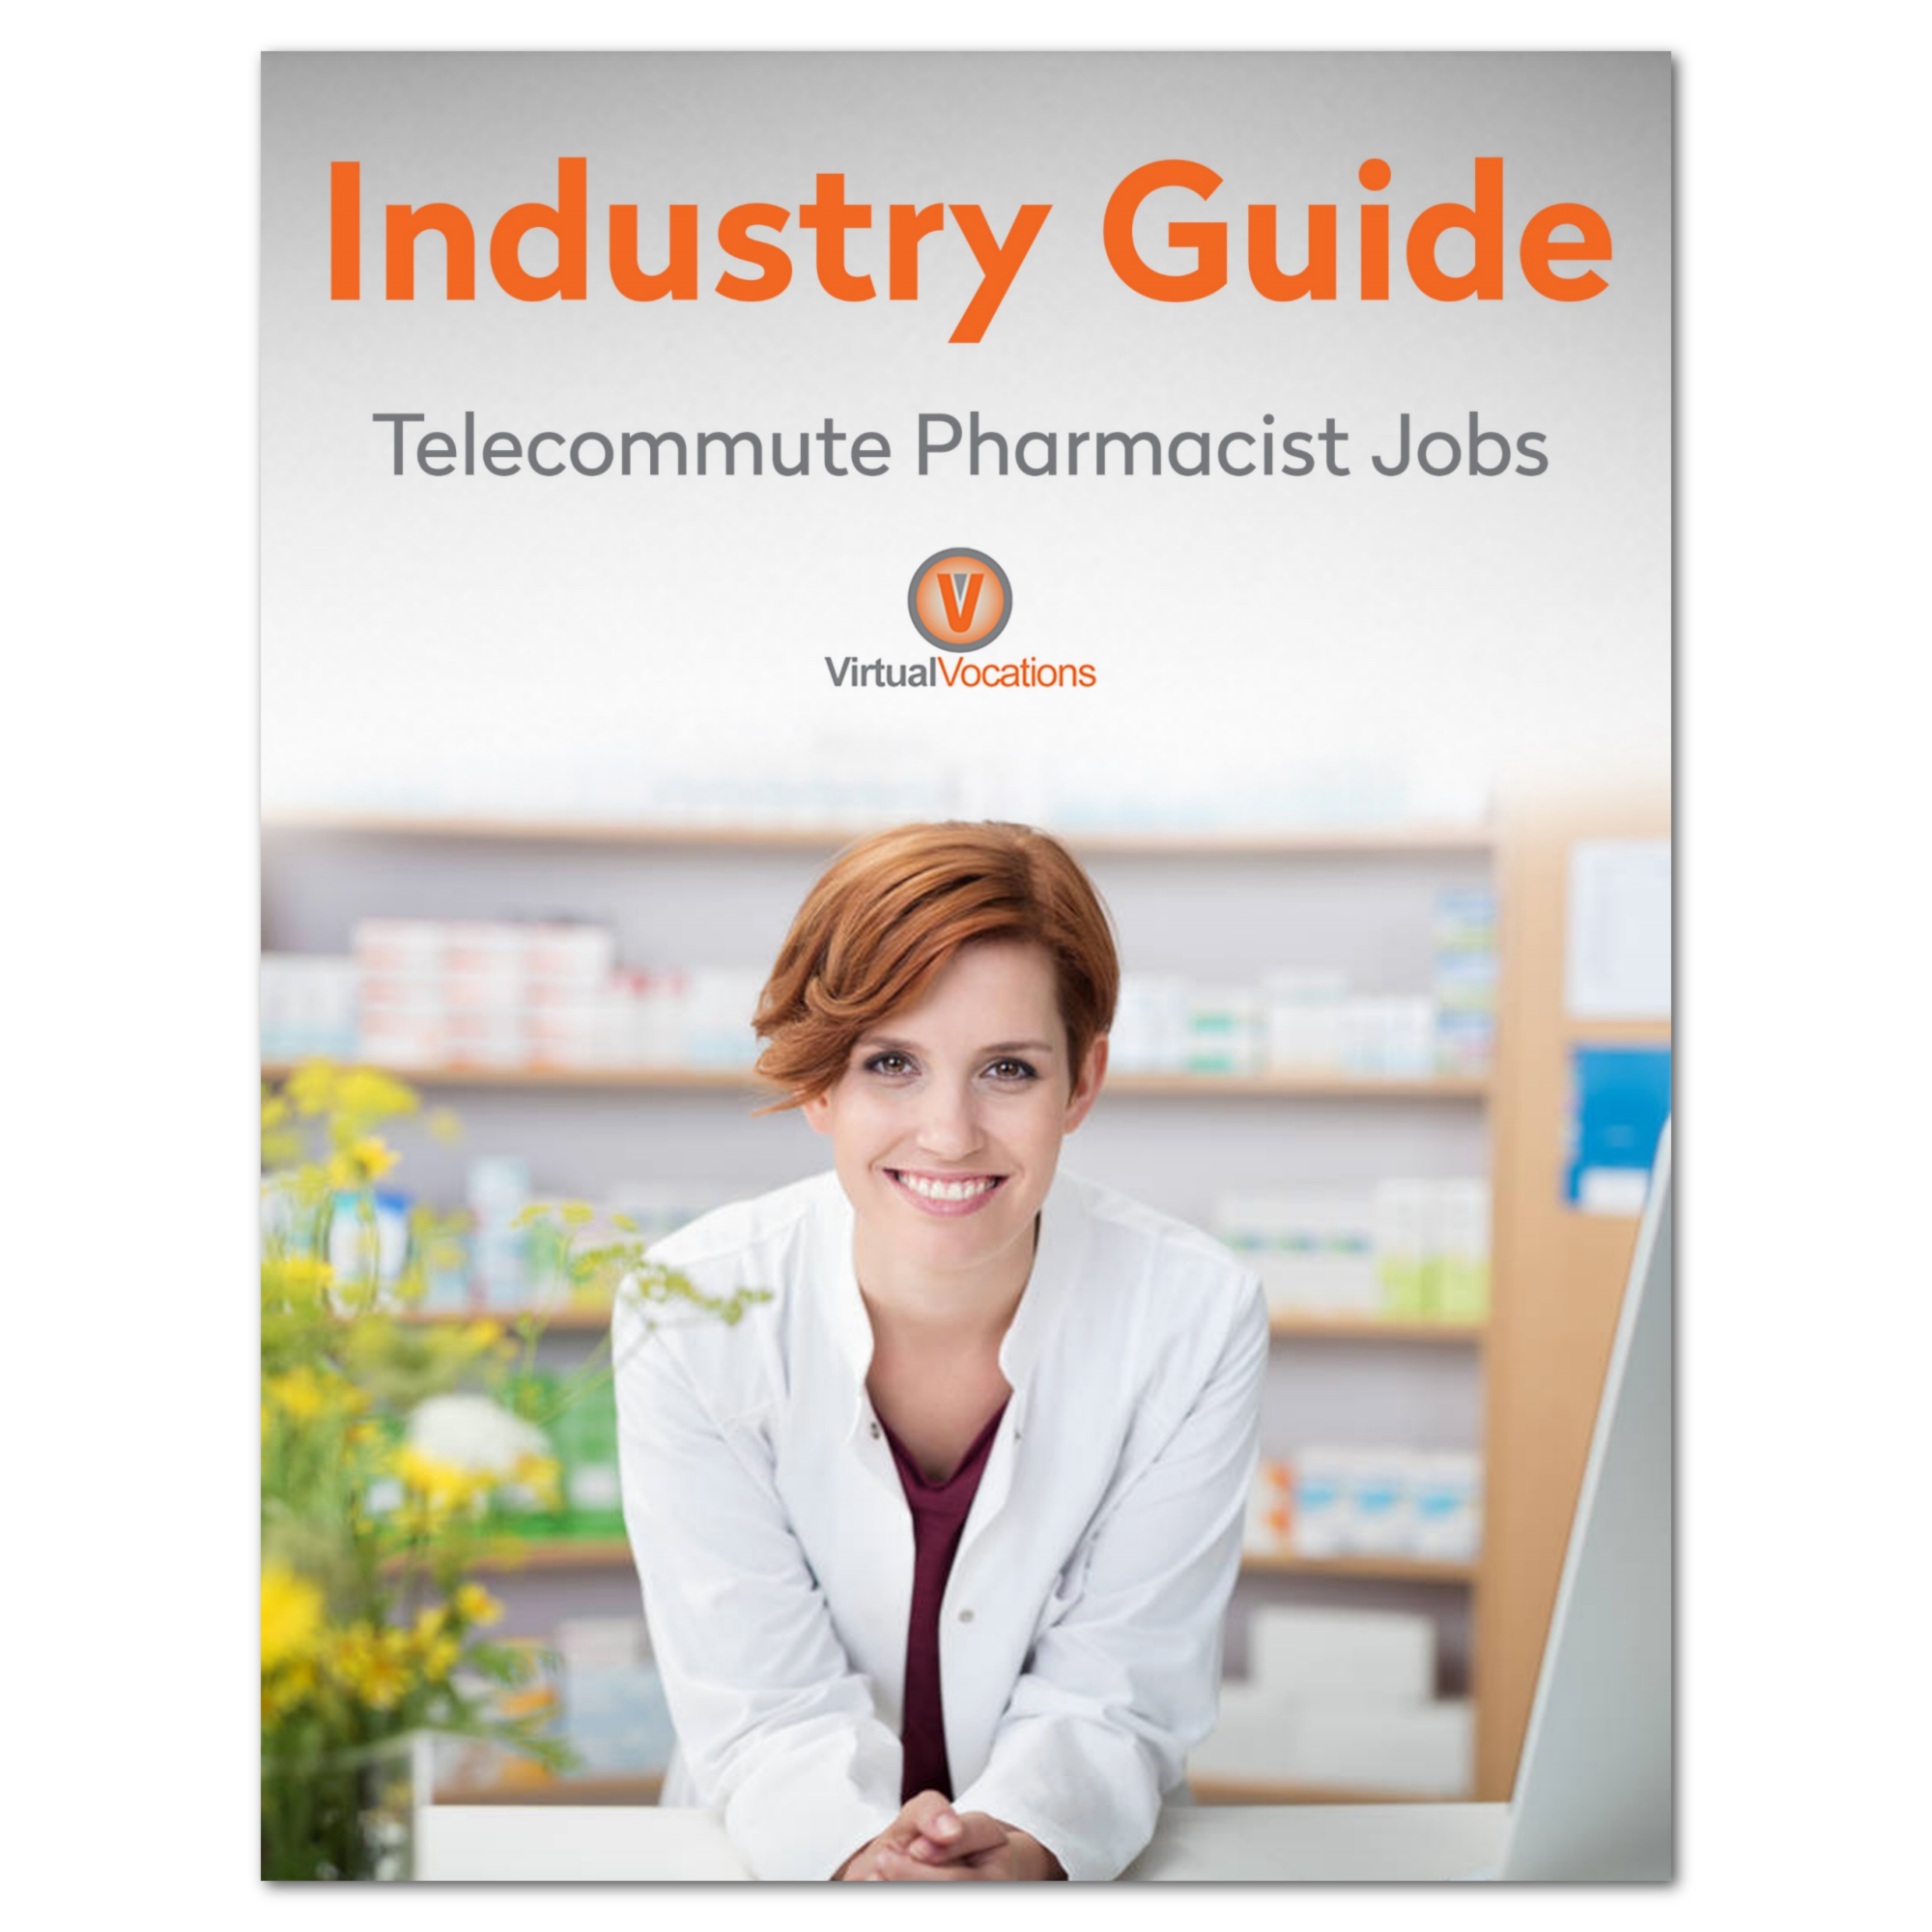 Industry Guide for Remote Pharmacists